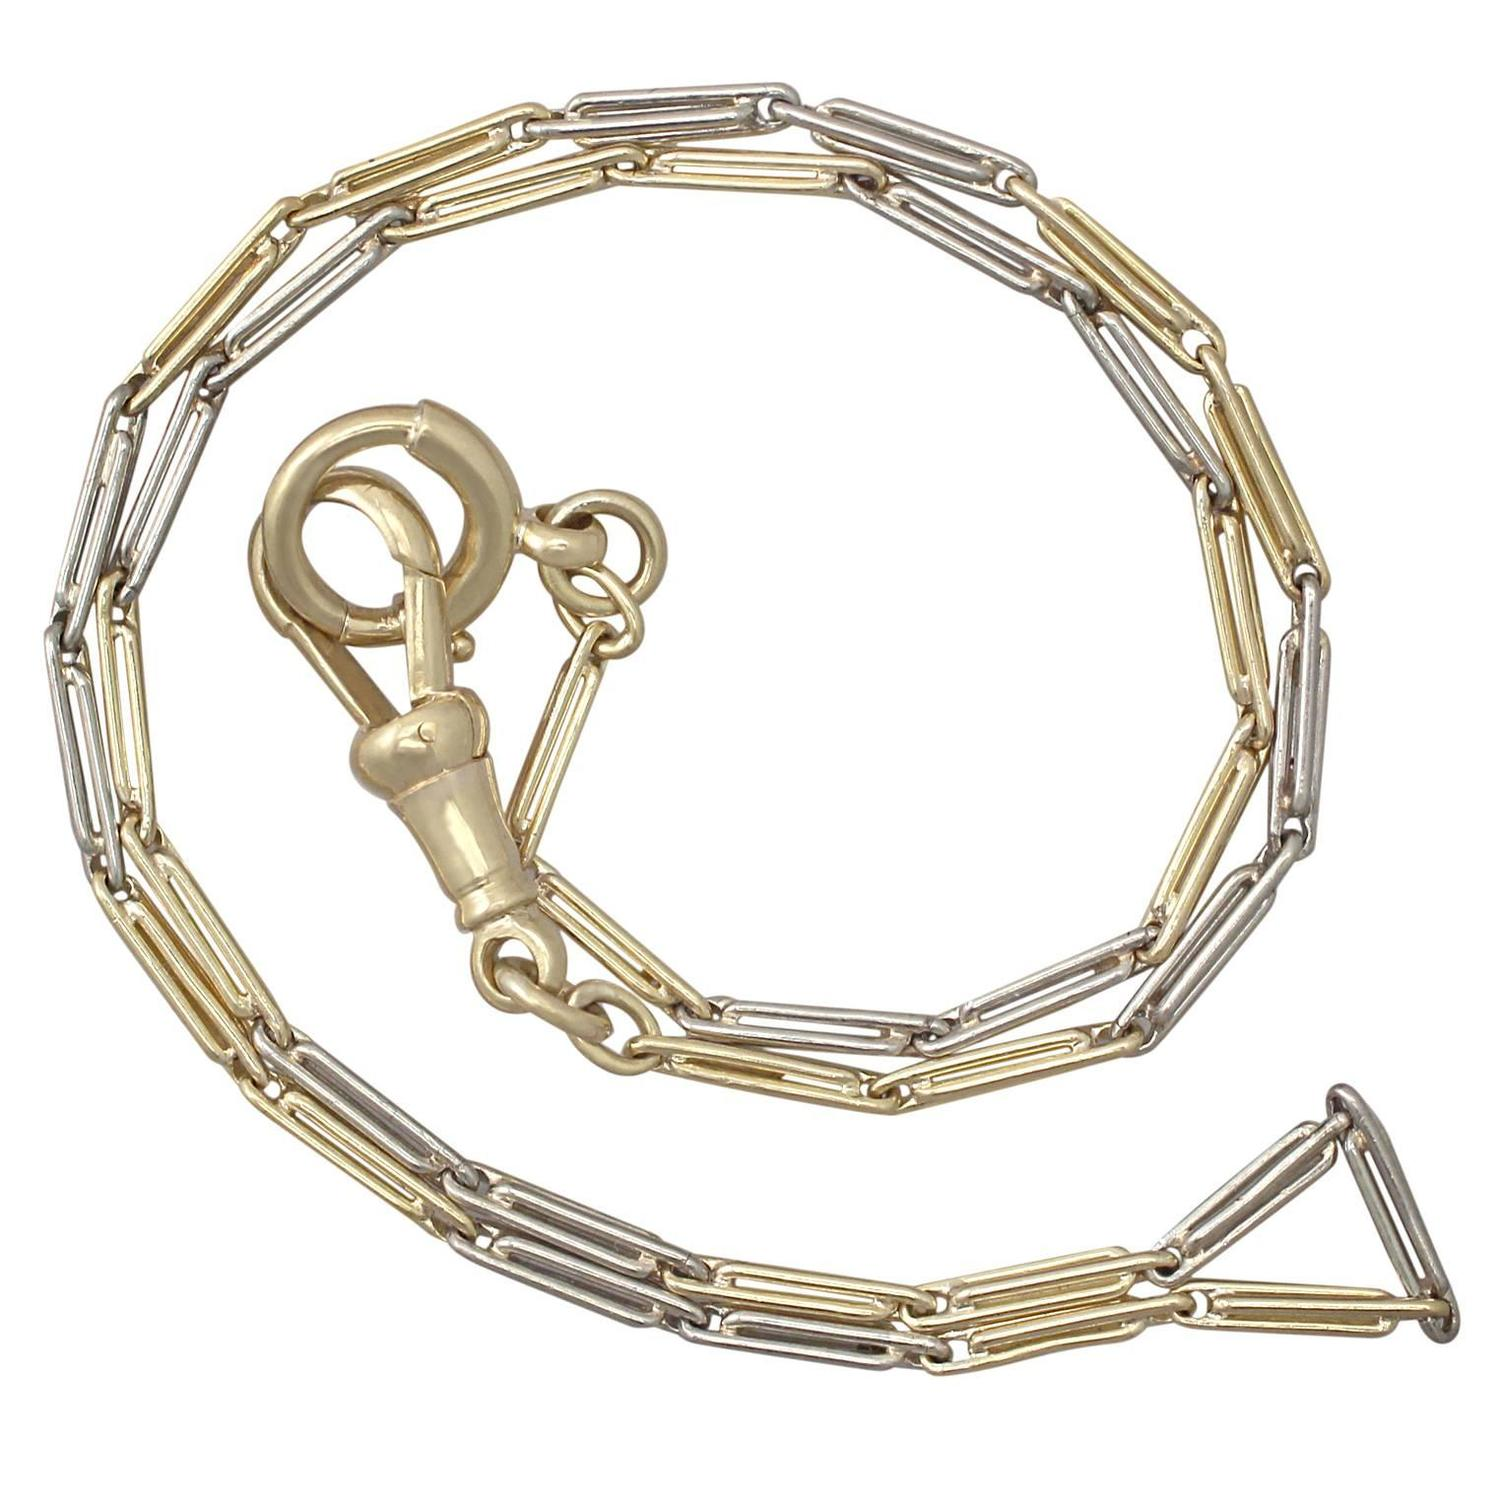 White Gold Chain Bracelet: 18k Yellow Gold And 18k White Gold Chain / Bracelet